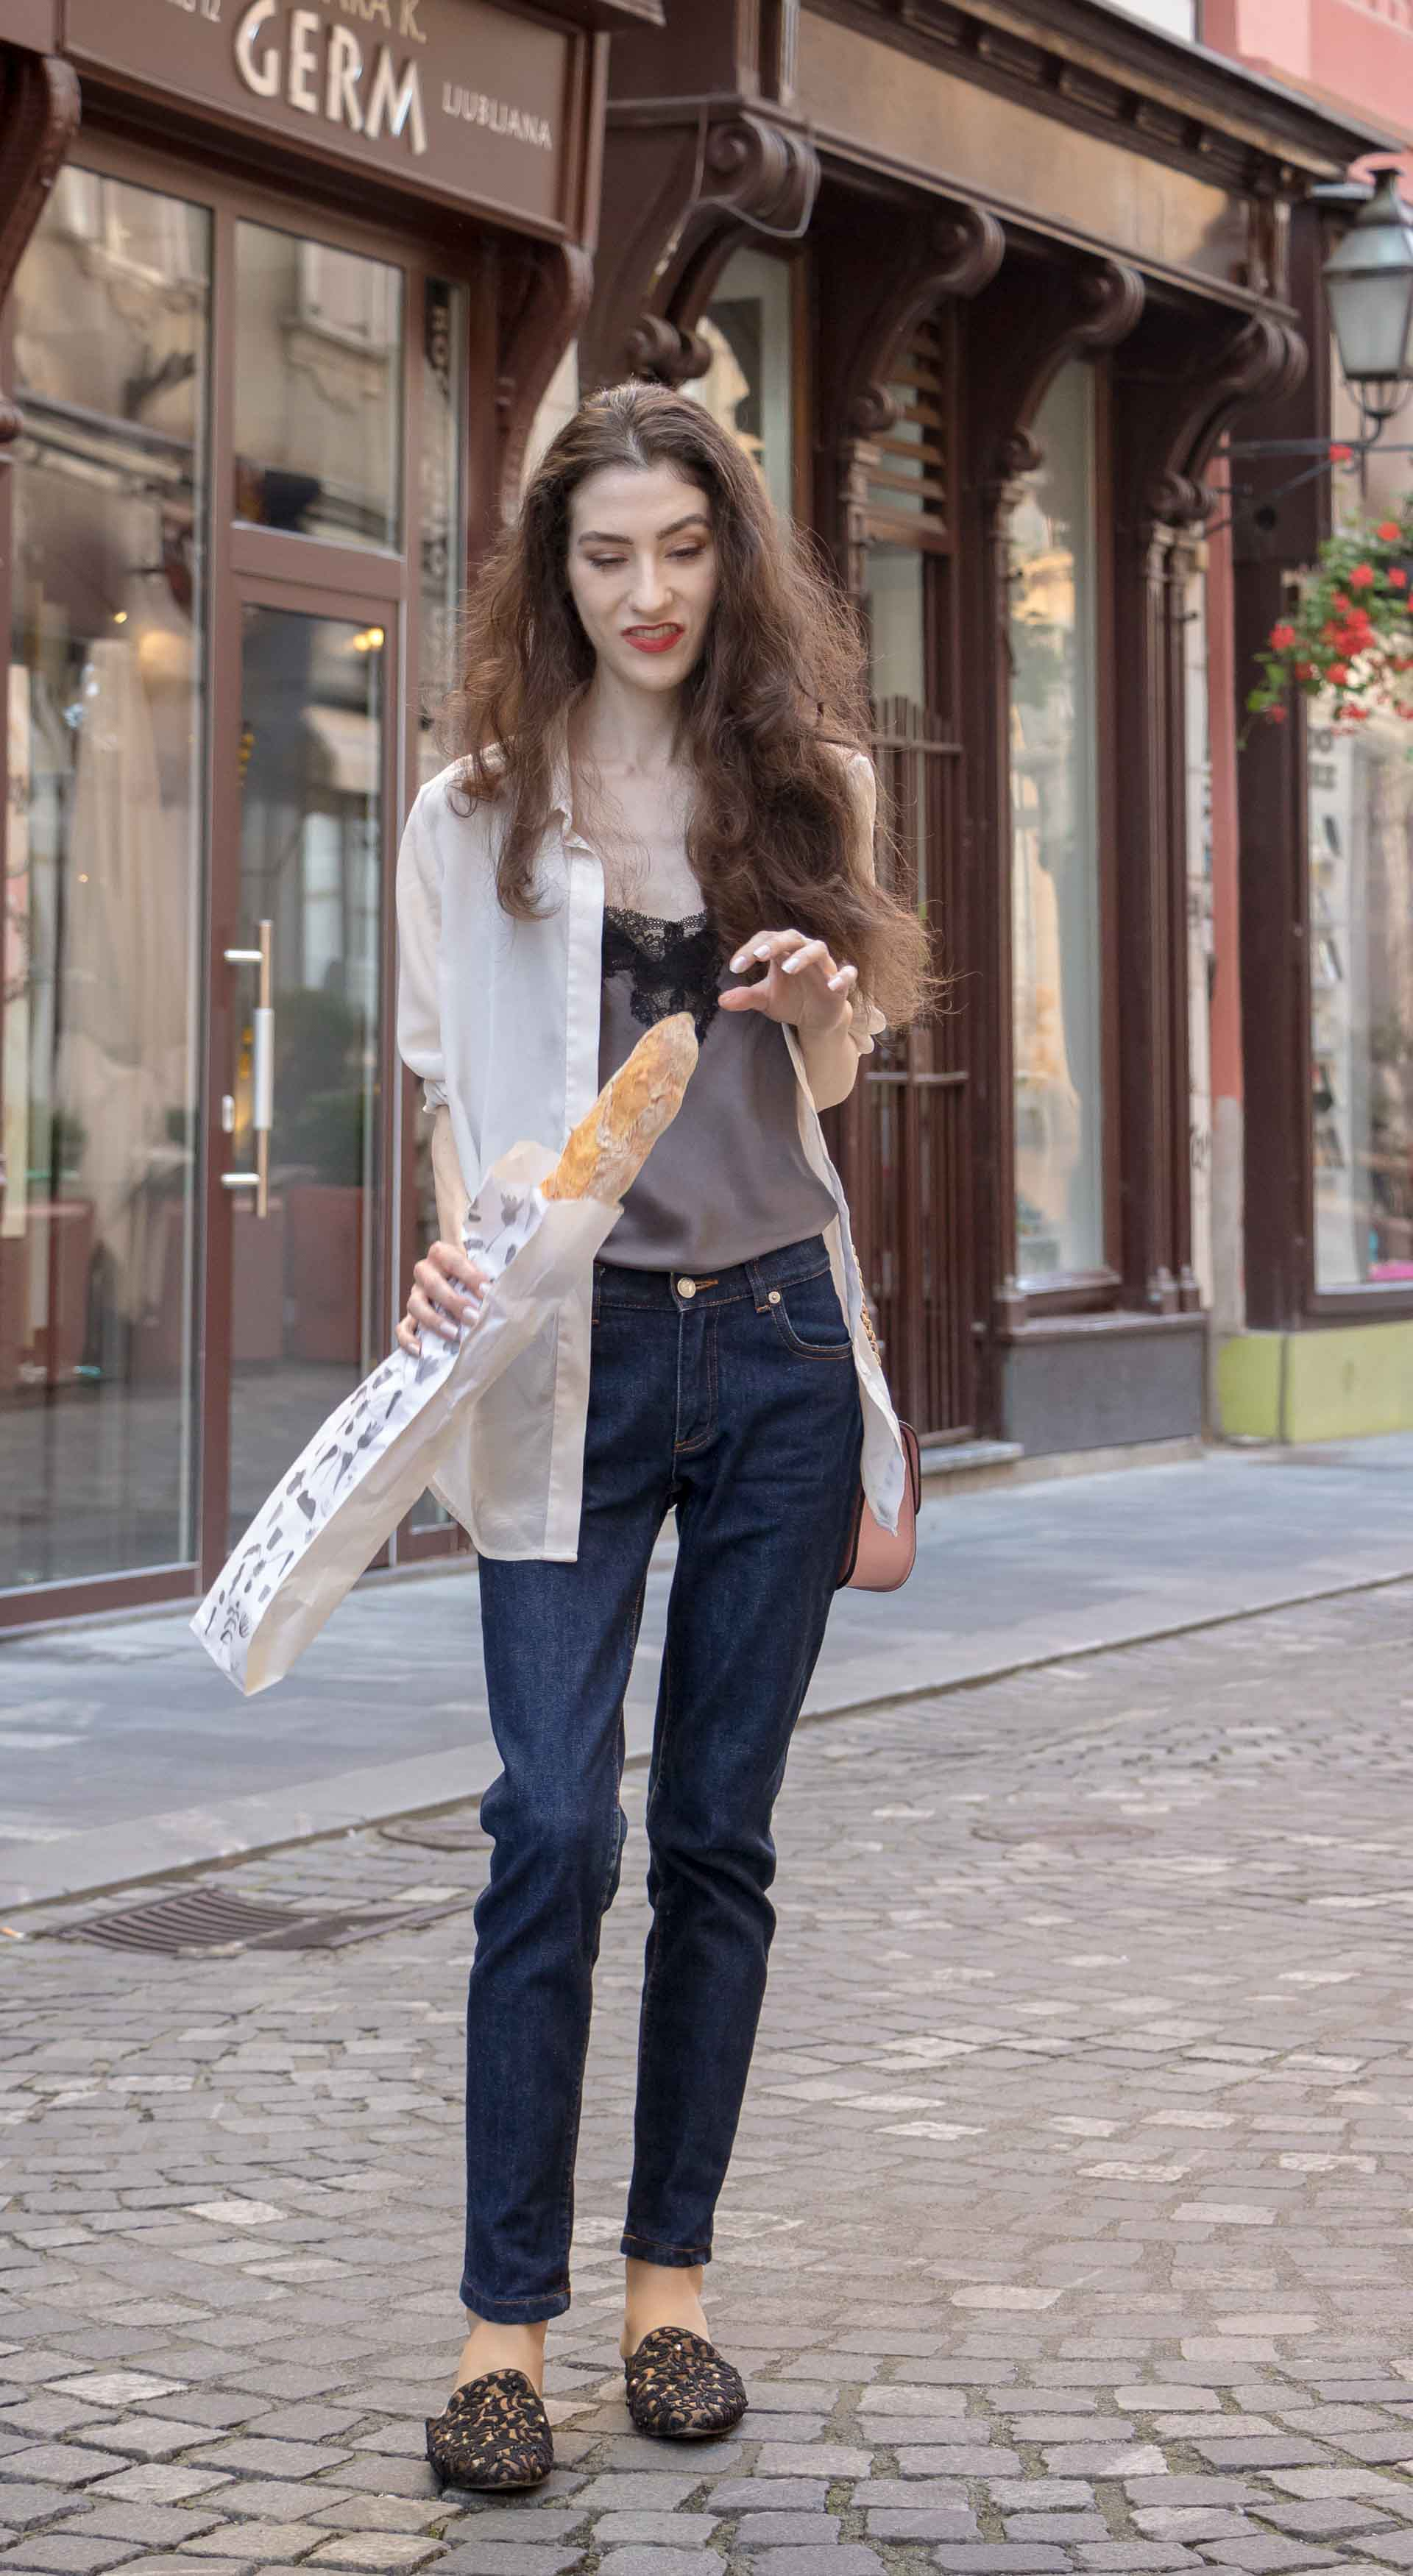 Fashion Blogger Veronika Lipar of Brunette from Wall Street dressed in white organza shirt with transparent back from Sandro Paris, grey silk slip top, A.P.C. dark denim jeans, mules, pink Furla shoulder bag, while holding a baguette on the street